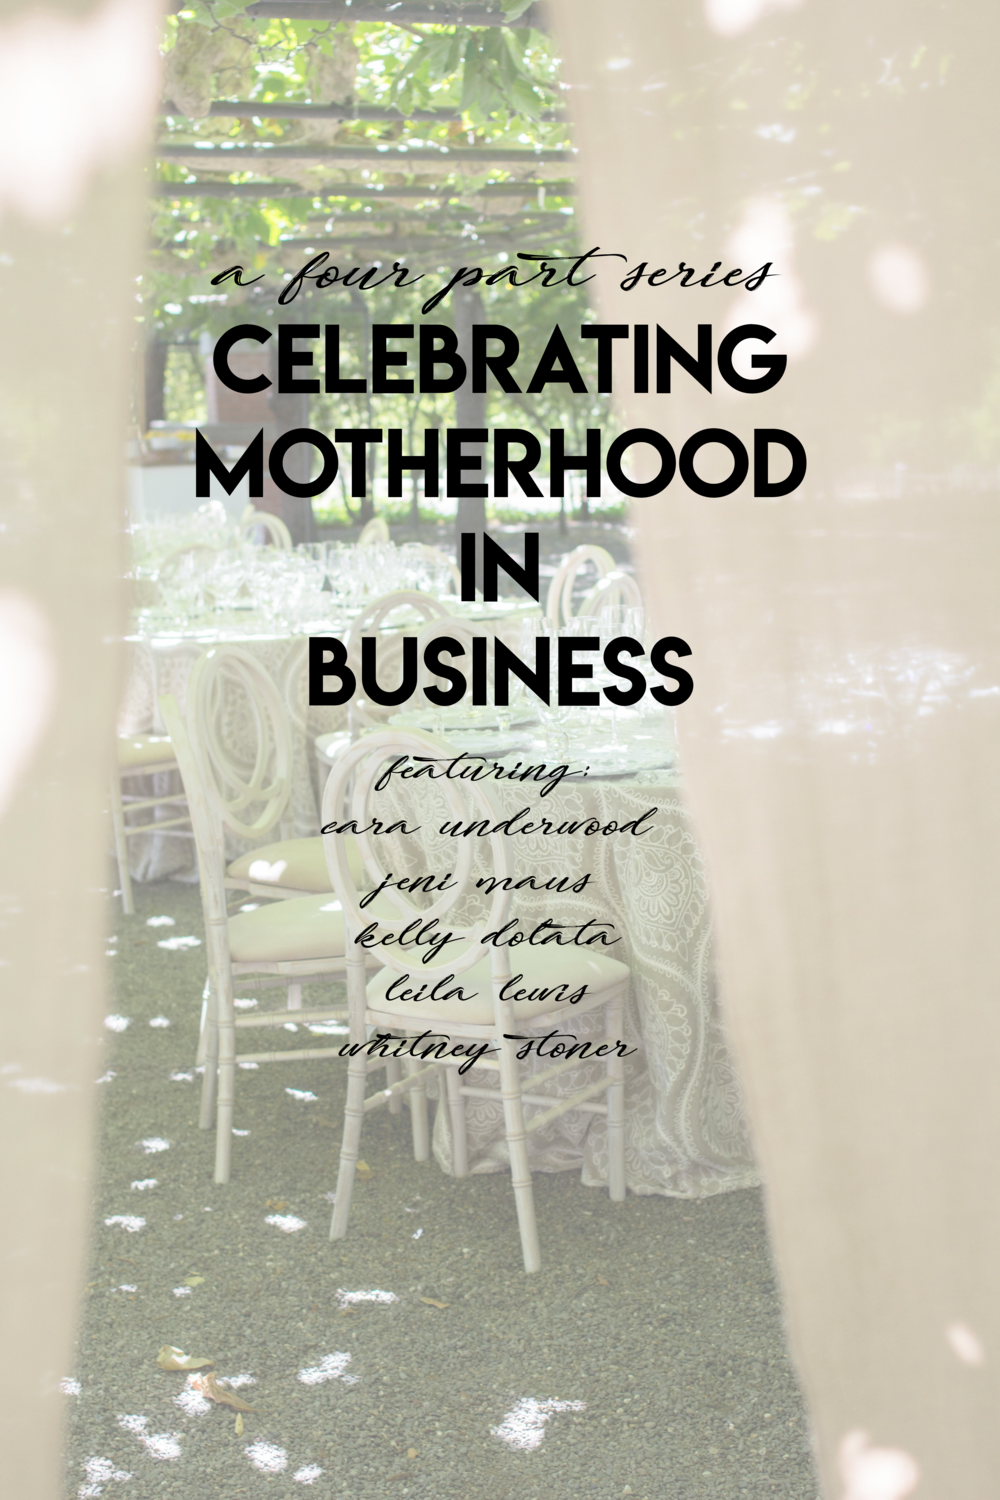 Celebrating motherhood front page.jpg